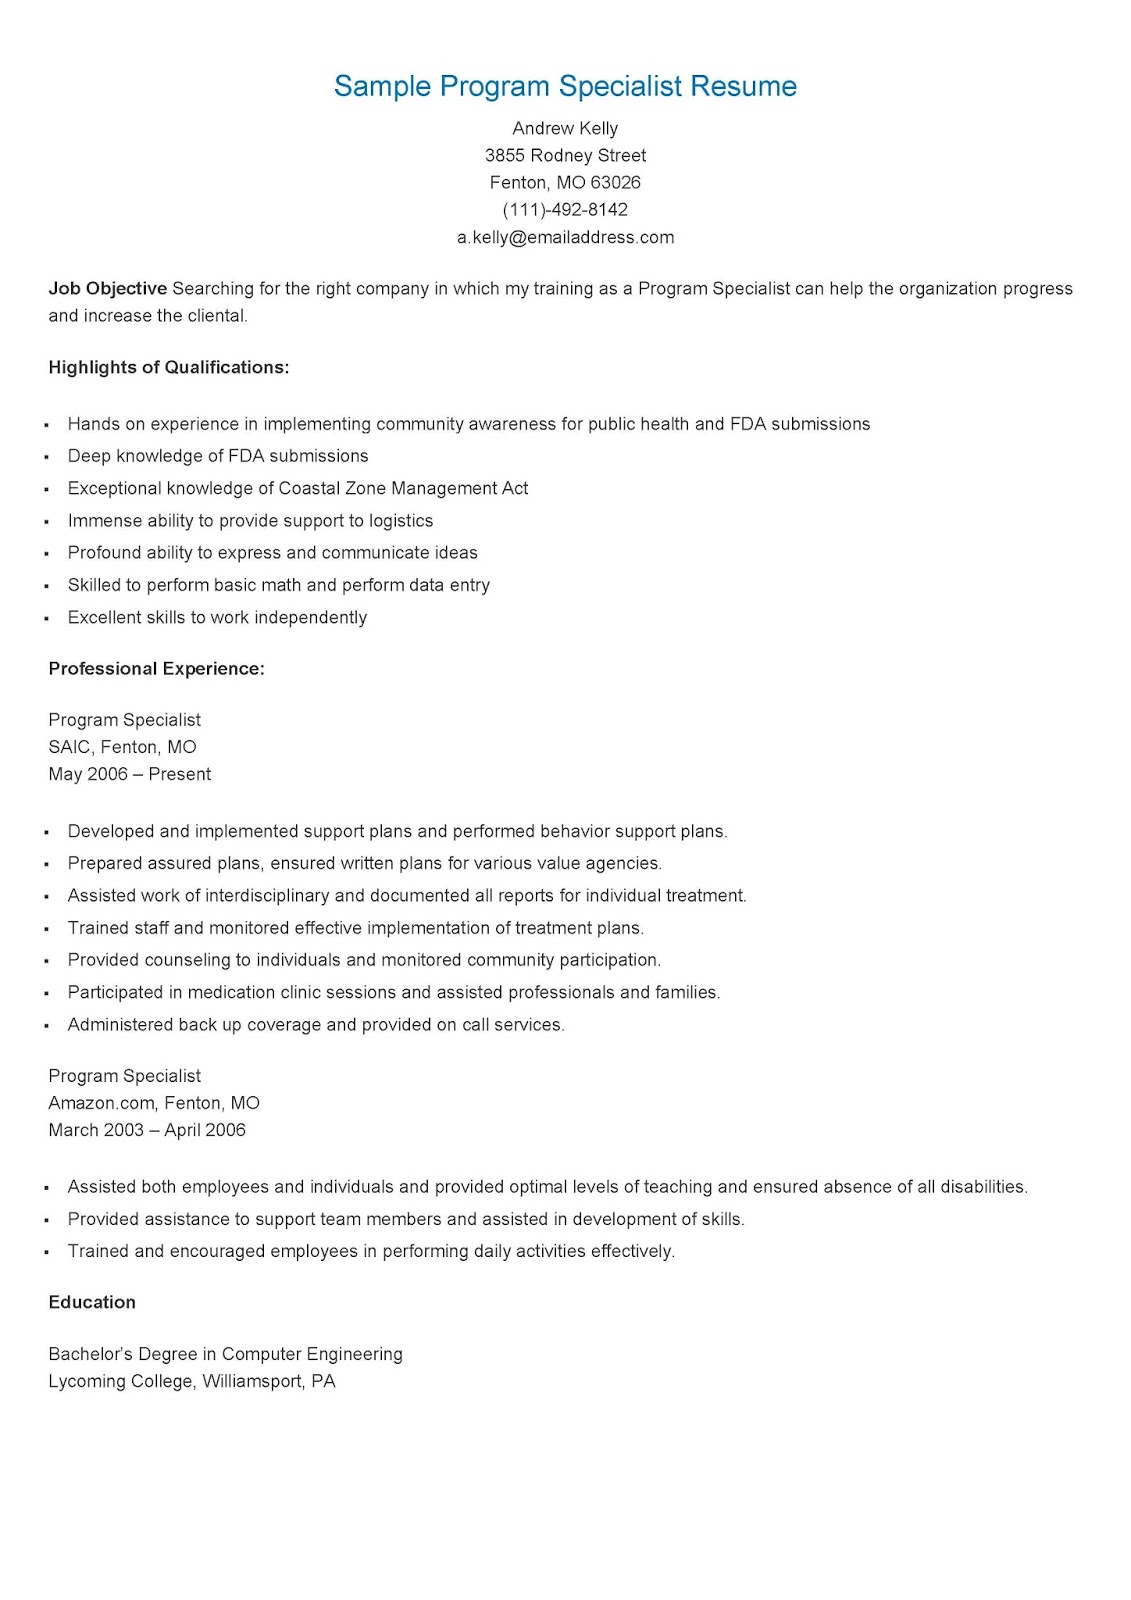 resume sles sle program specialist resume